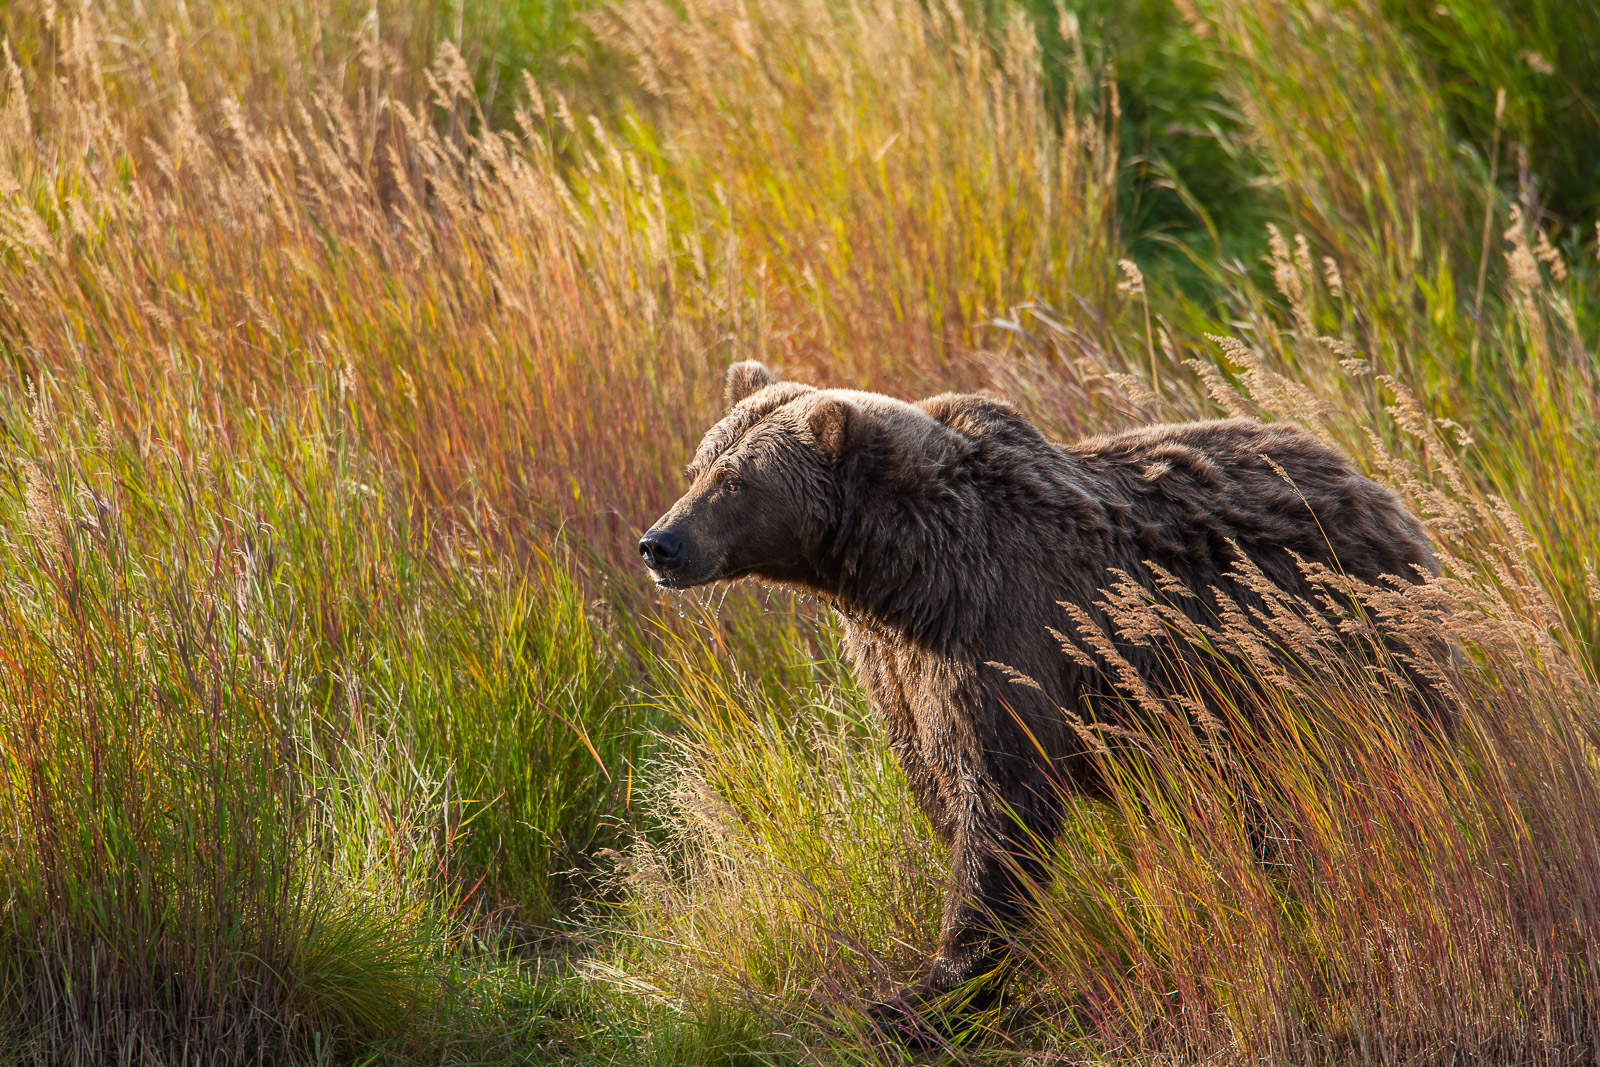 Autumn Grasses,Fall,Fishing,Grizzly,Wildlife,Autumn,Grasses,Katmai National Park,River,water,hunt,brown, horizontal, bear, photo